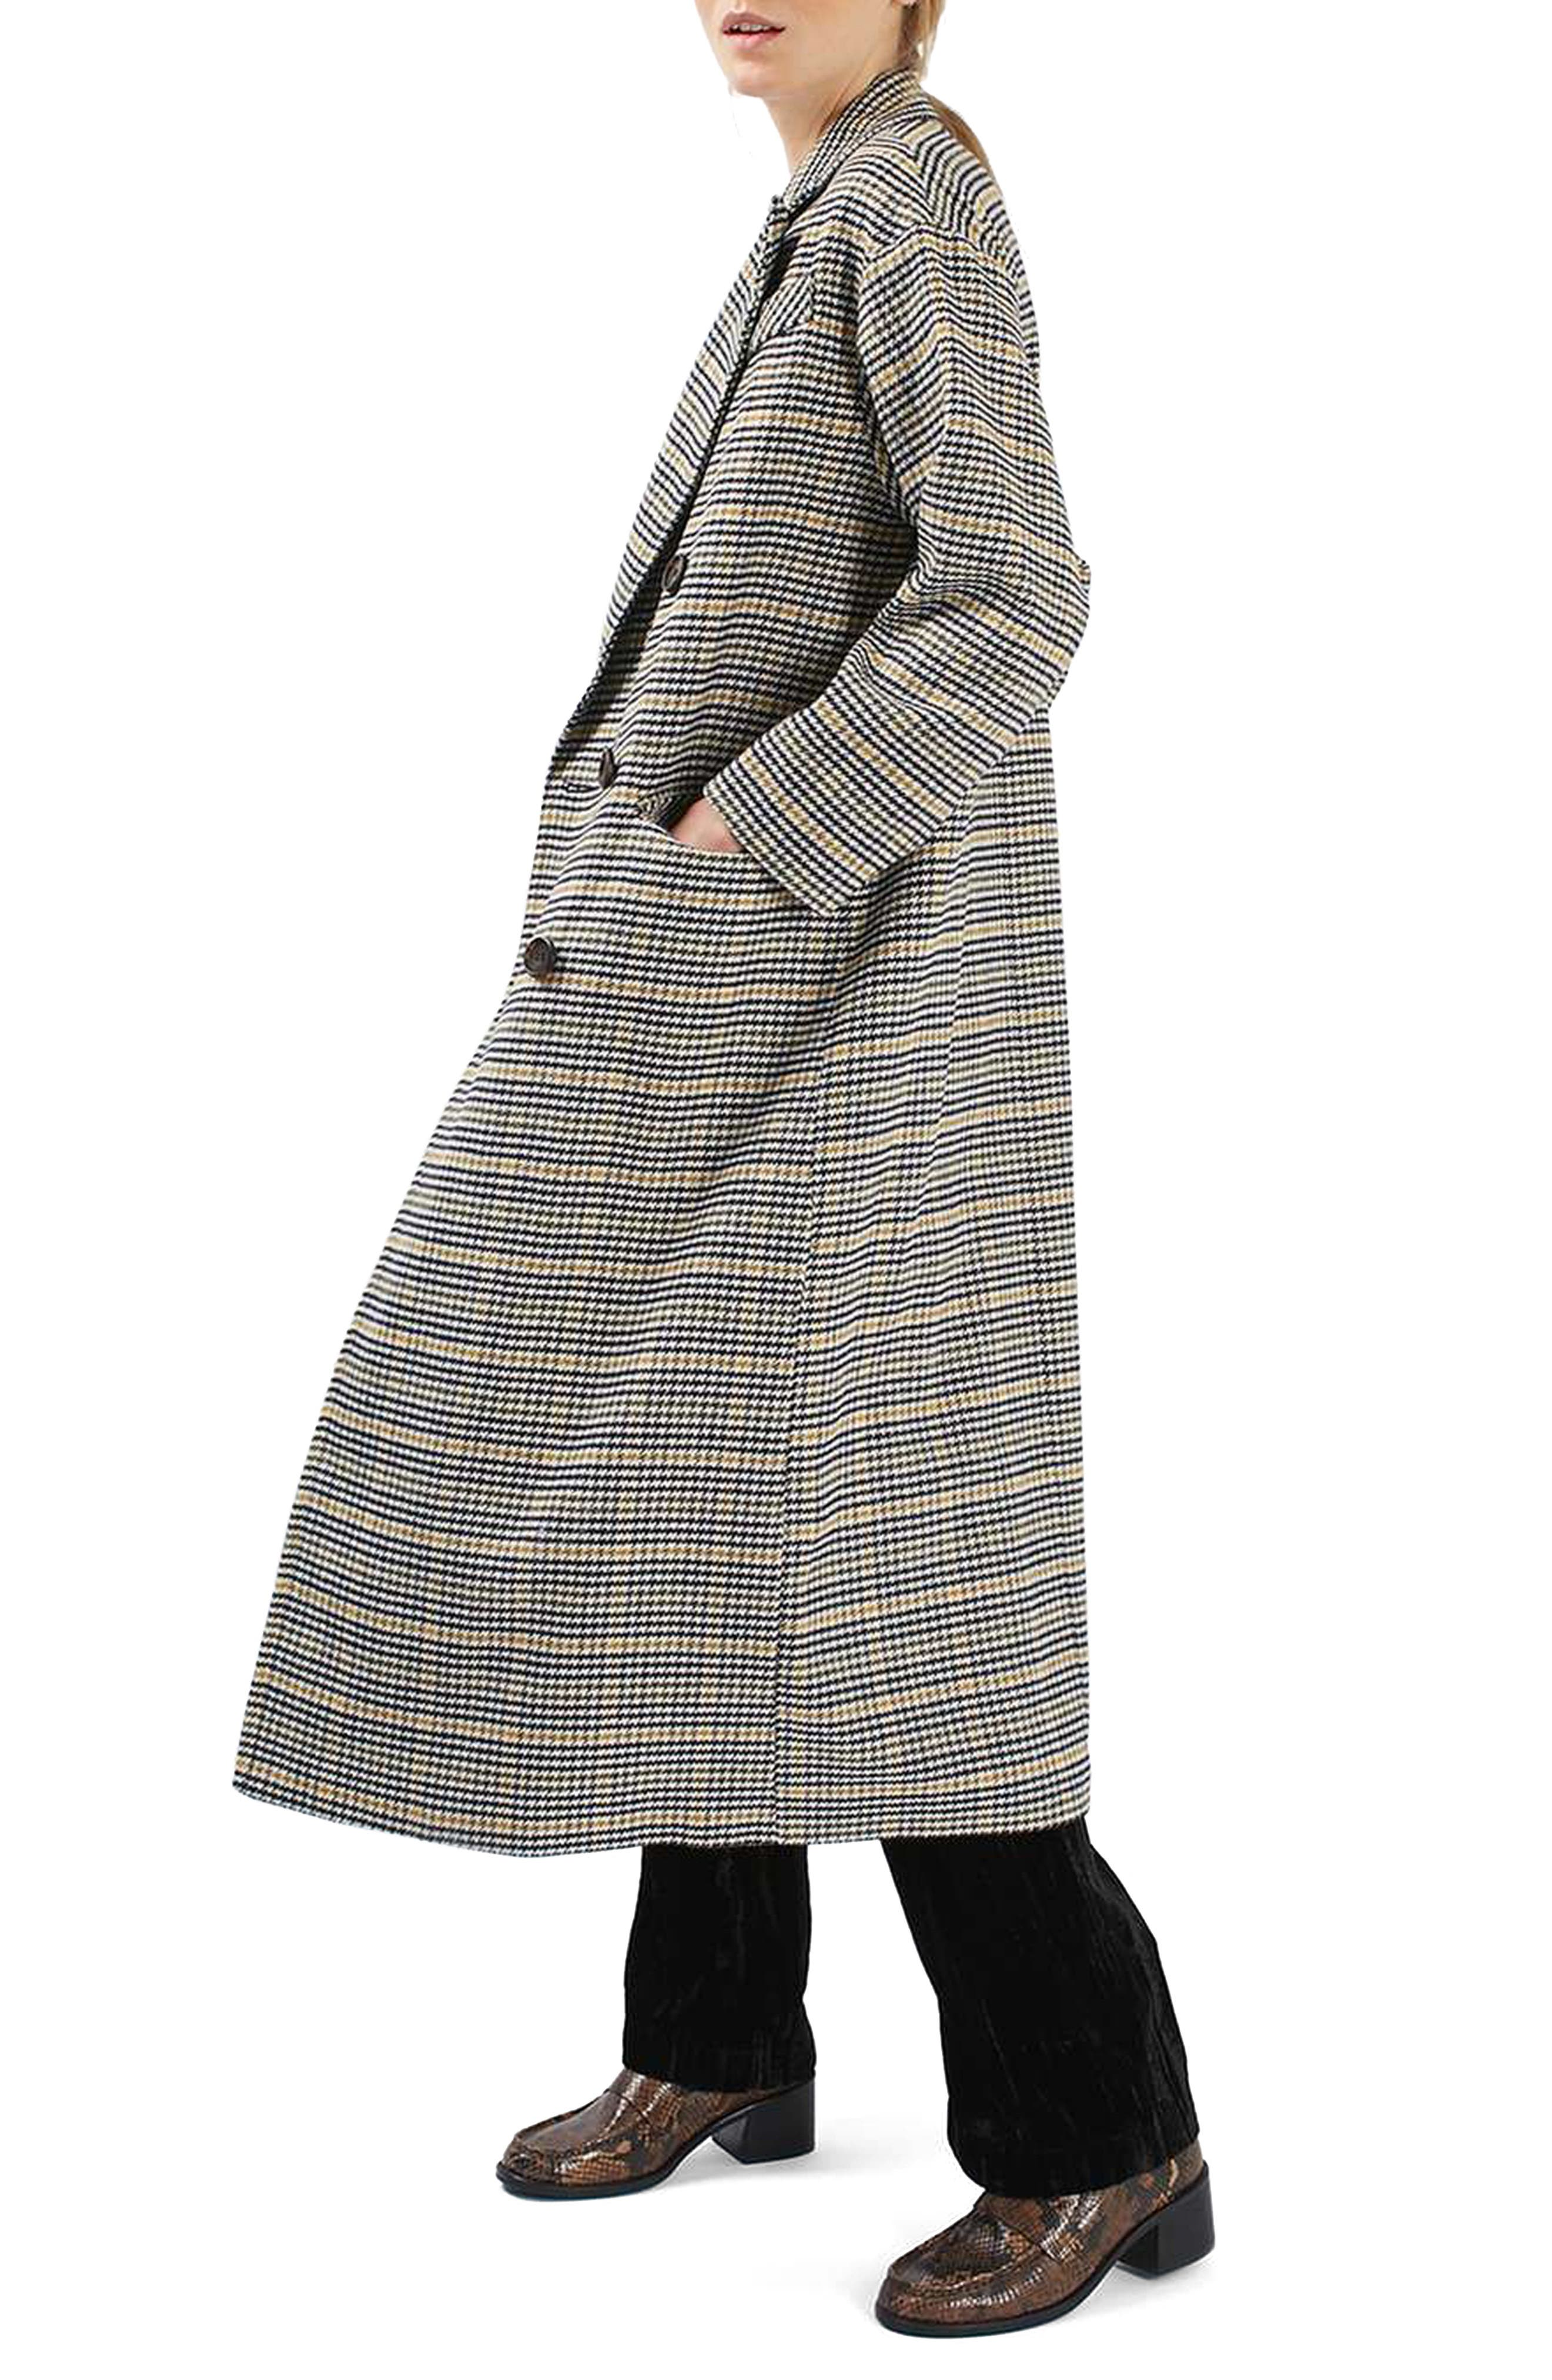 TOPSHOP,                             Heritage Check Coat,                             Alternate thumbnail 3, color,                             001